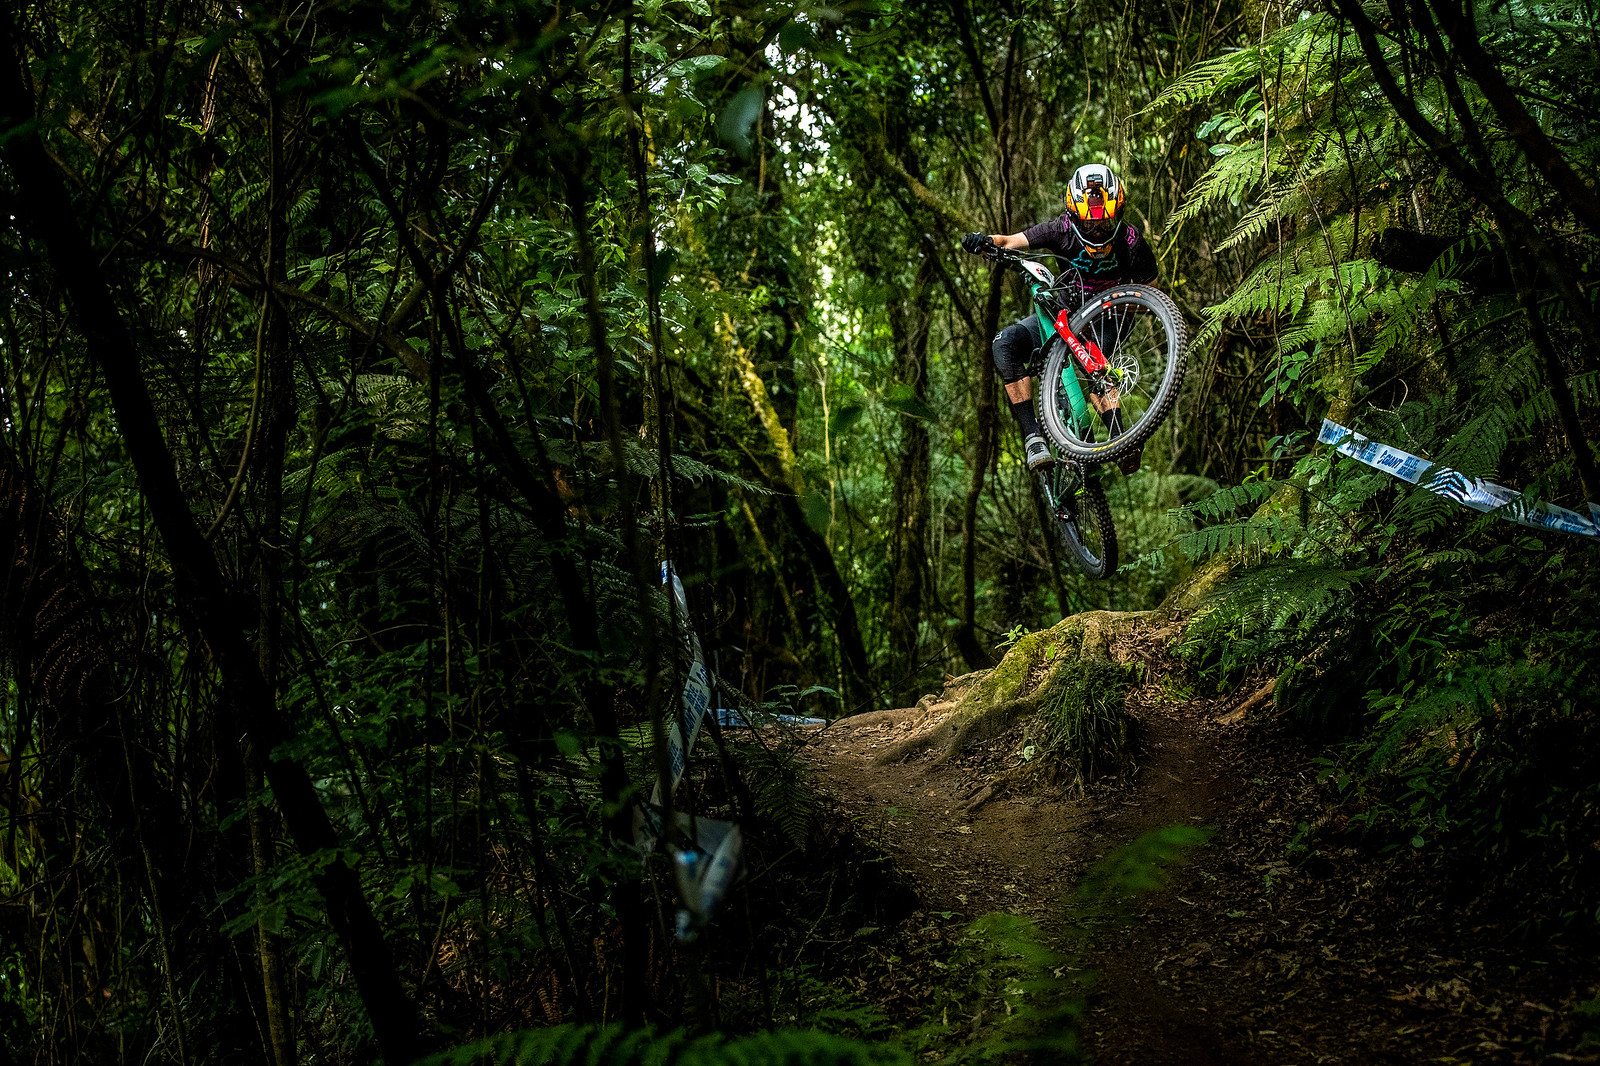 Mark Scott - 2019 Enduro World Series Crankworx Rotorua - Mountain Biking Pictures - Vital MTB